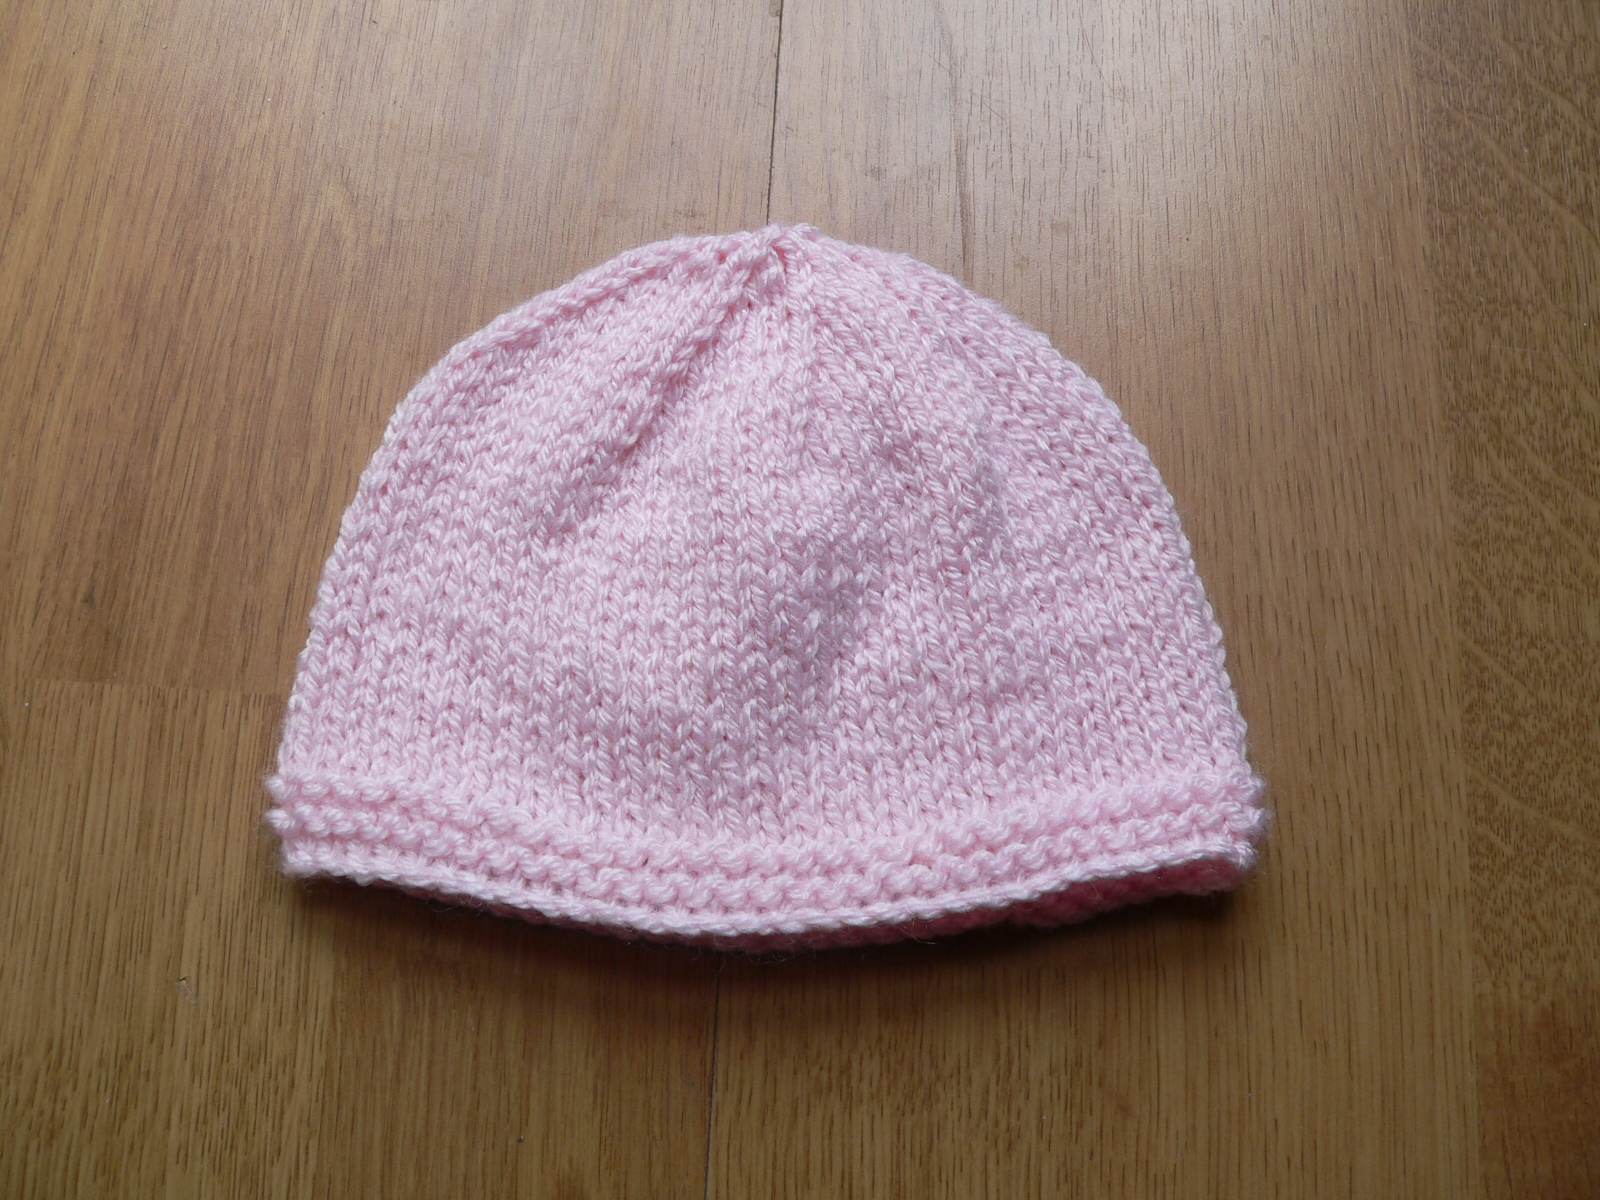 The Blattcave: POTD: Newborn Hospital Hat